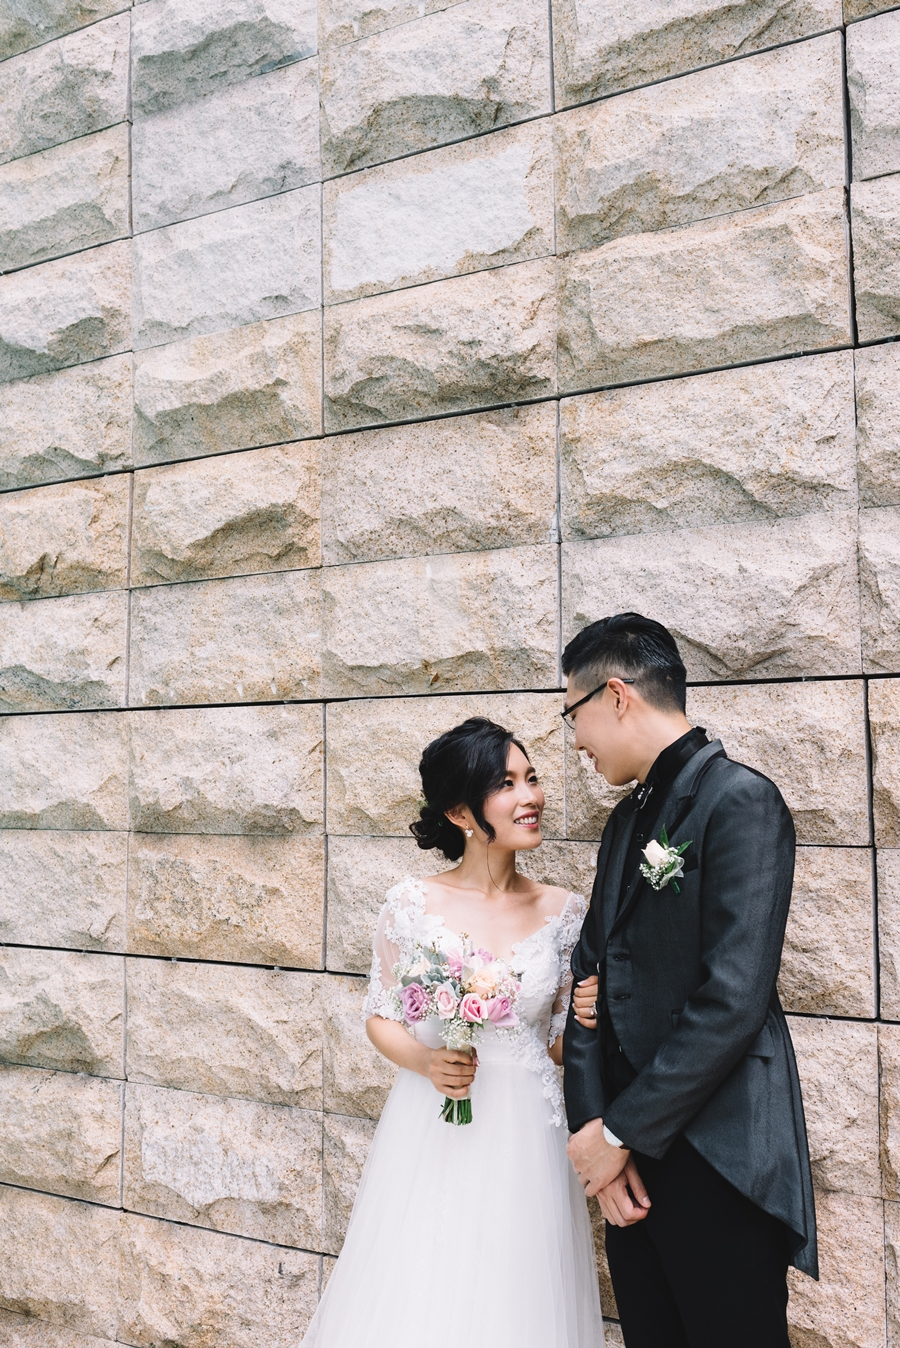 James_Jia Yee_Wedding (159).jpg